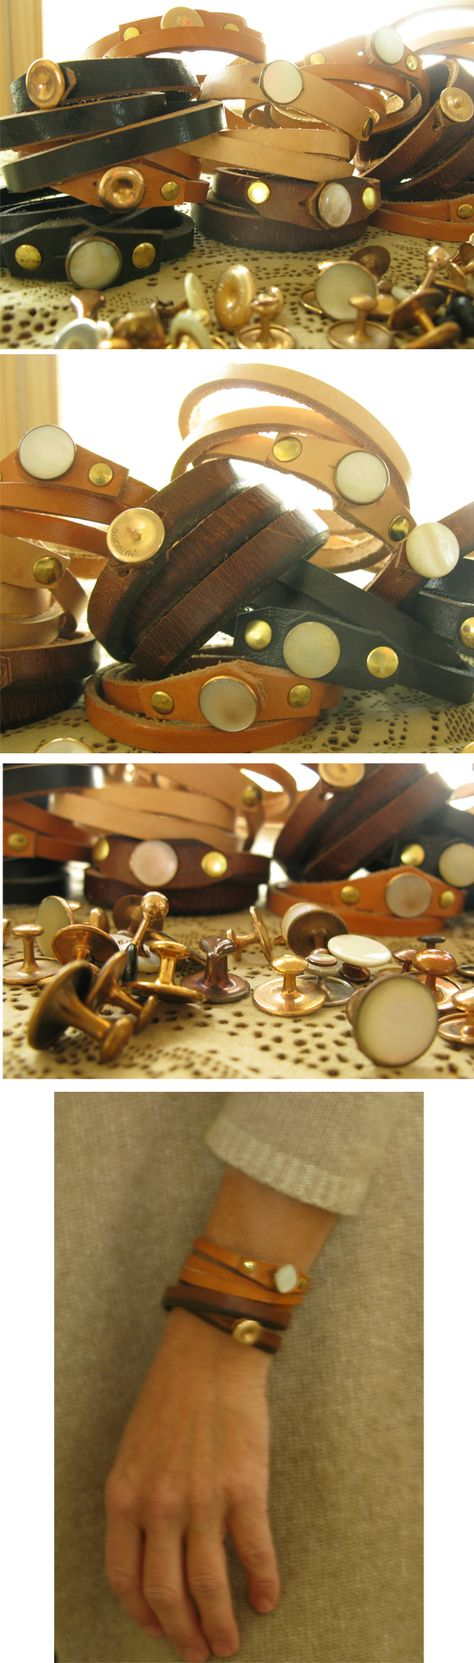 How to make your own leather )& other materials) bracelets